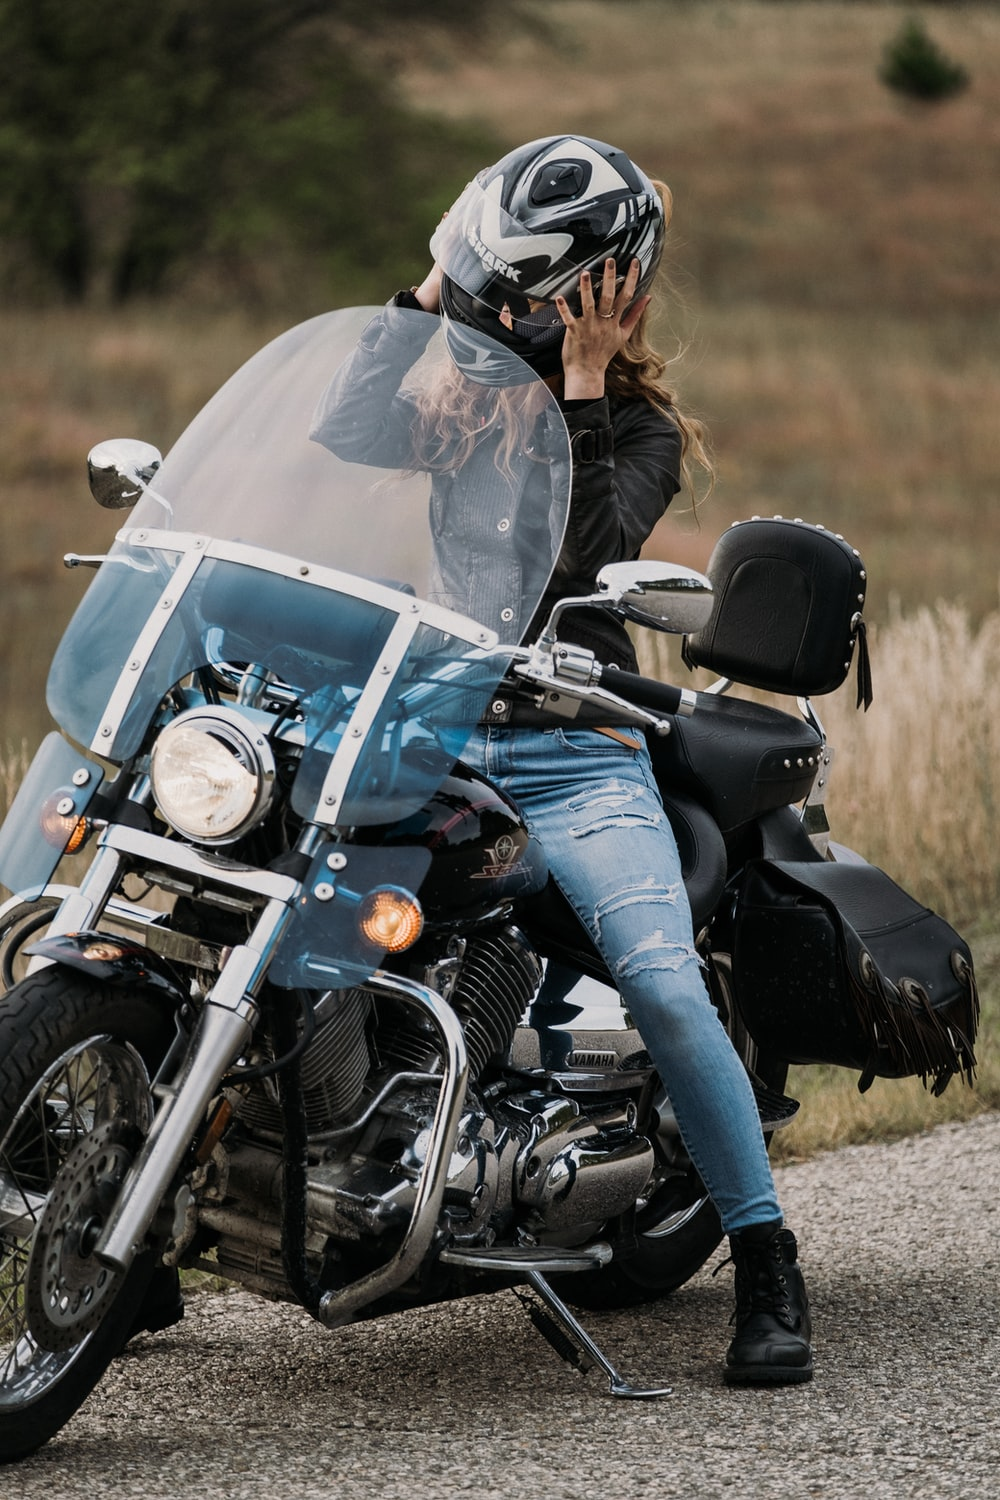 woman riding on black and gray motorcycle